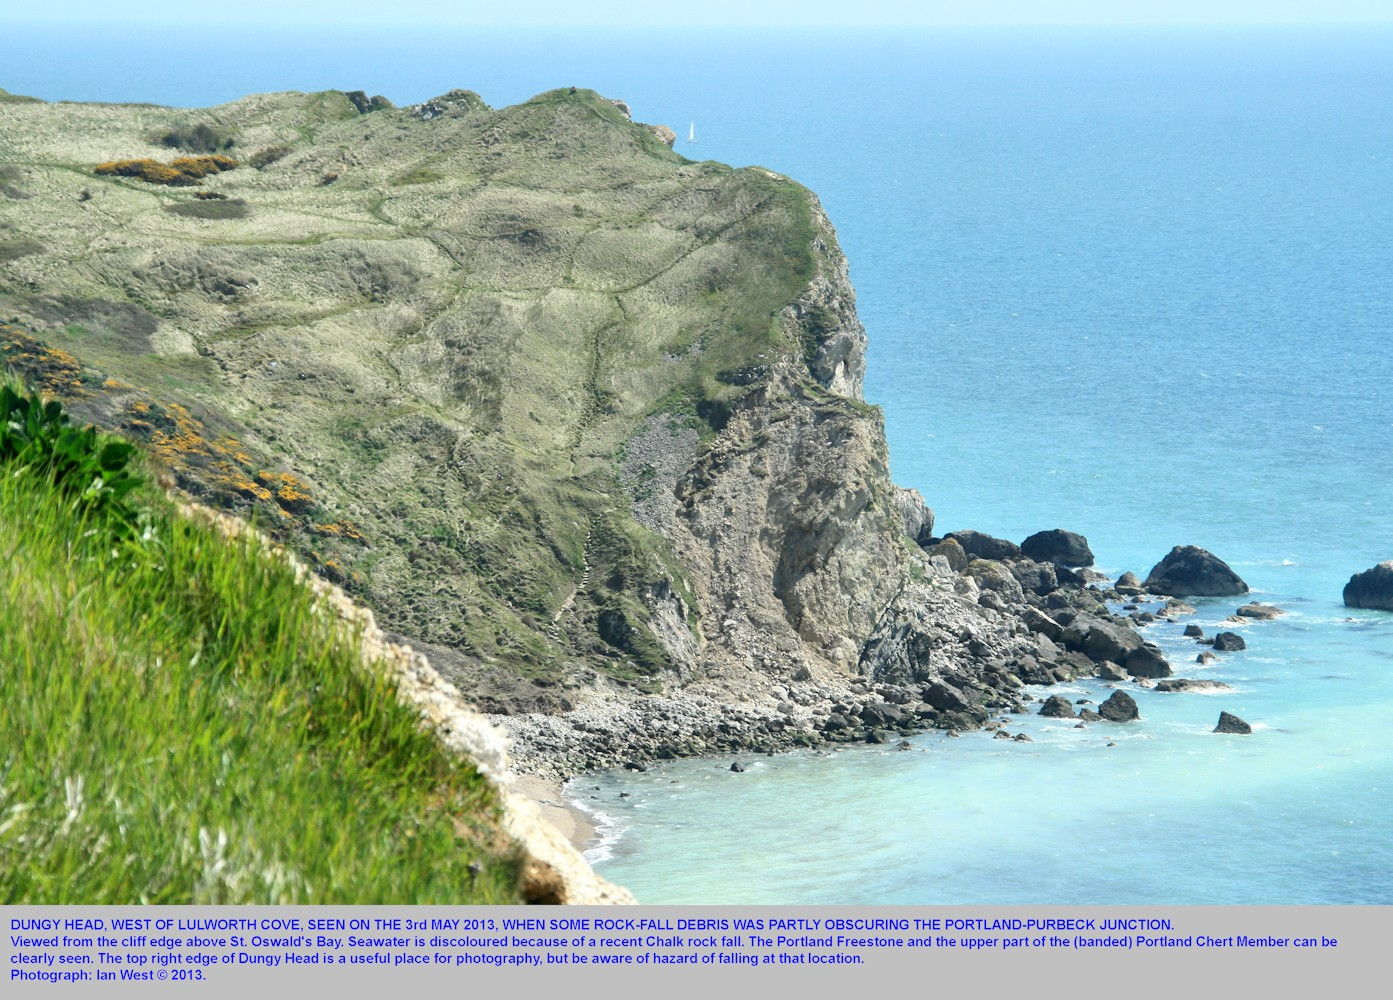 A general view of Dungy Head, from above St. Oswald's Bay, west of Lulworth Cove, Dorset, 3rd May 2013